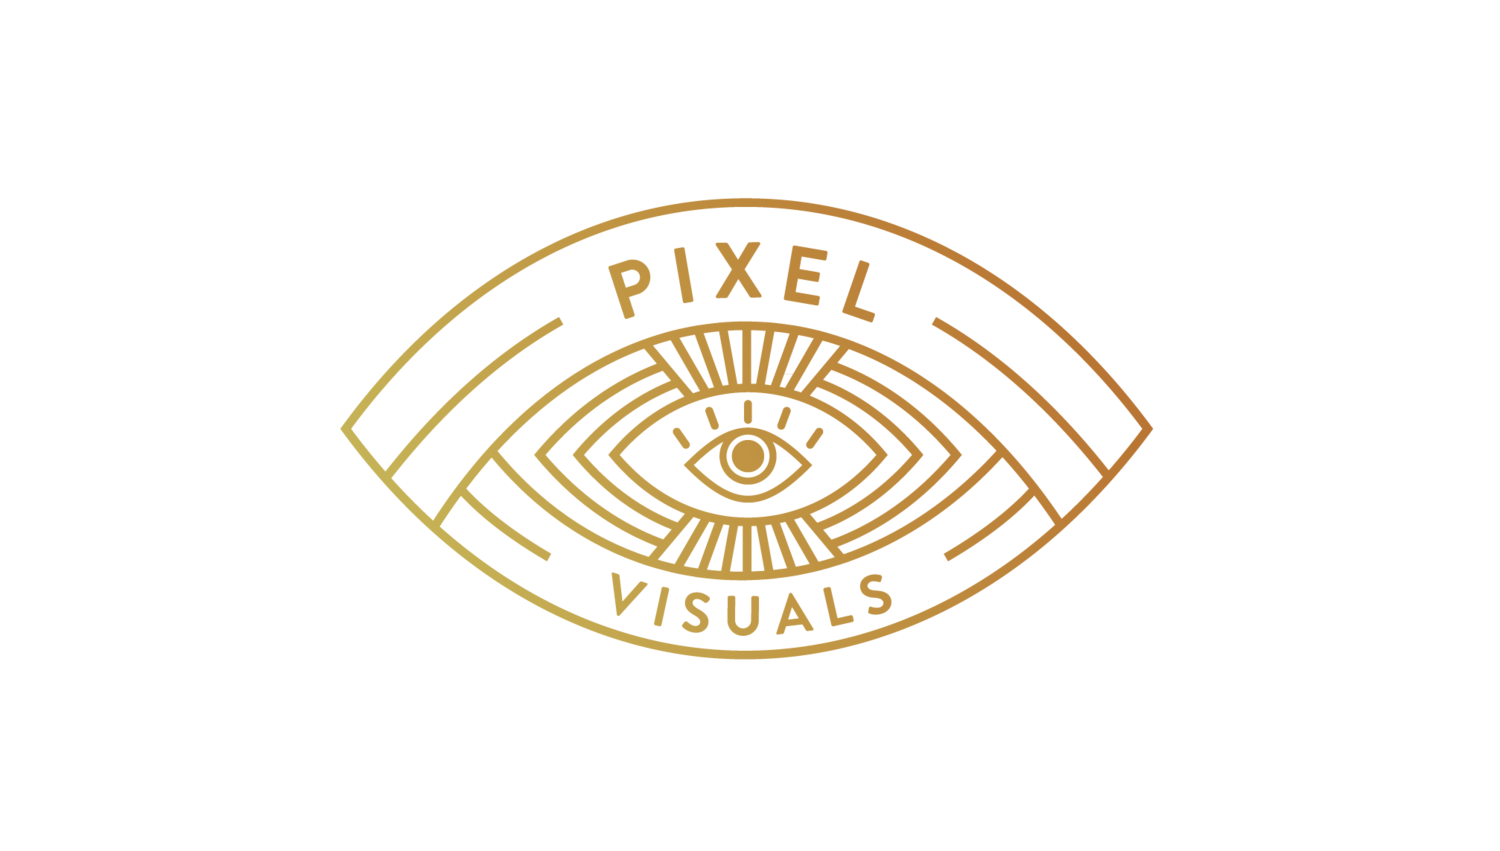 Pixel Visuals